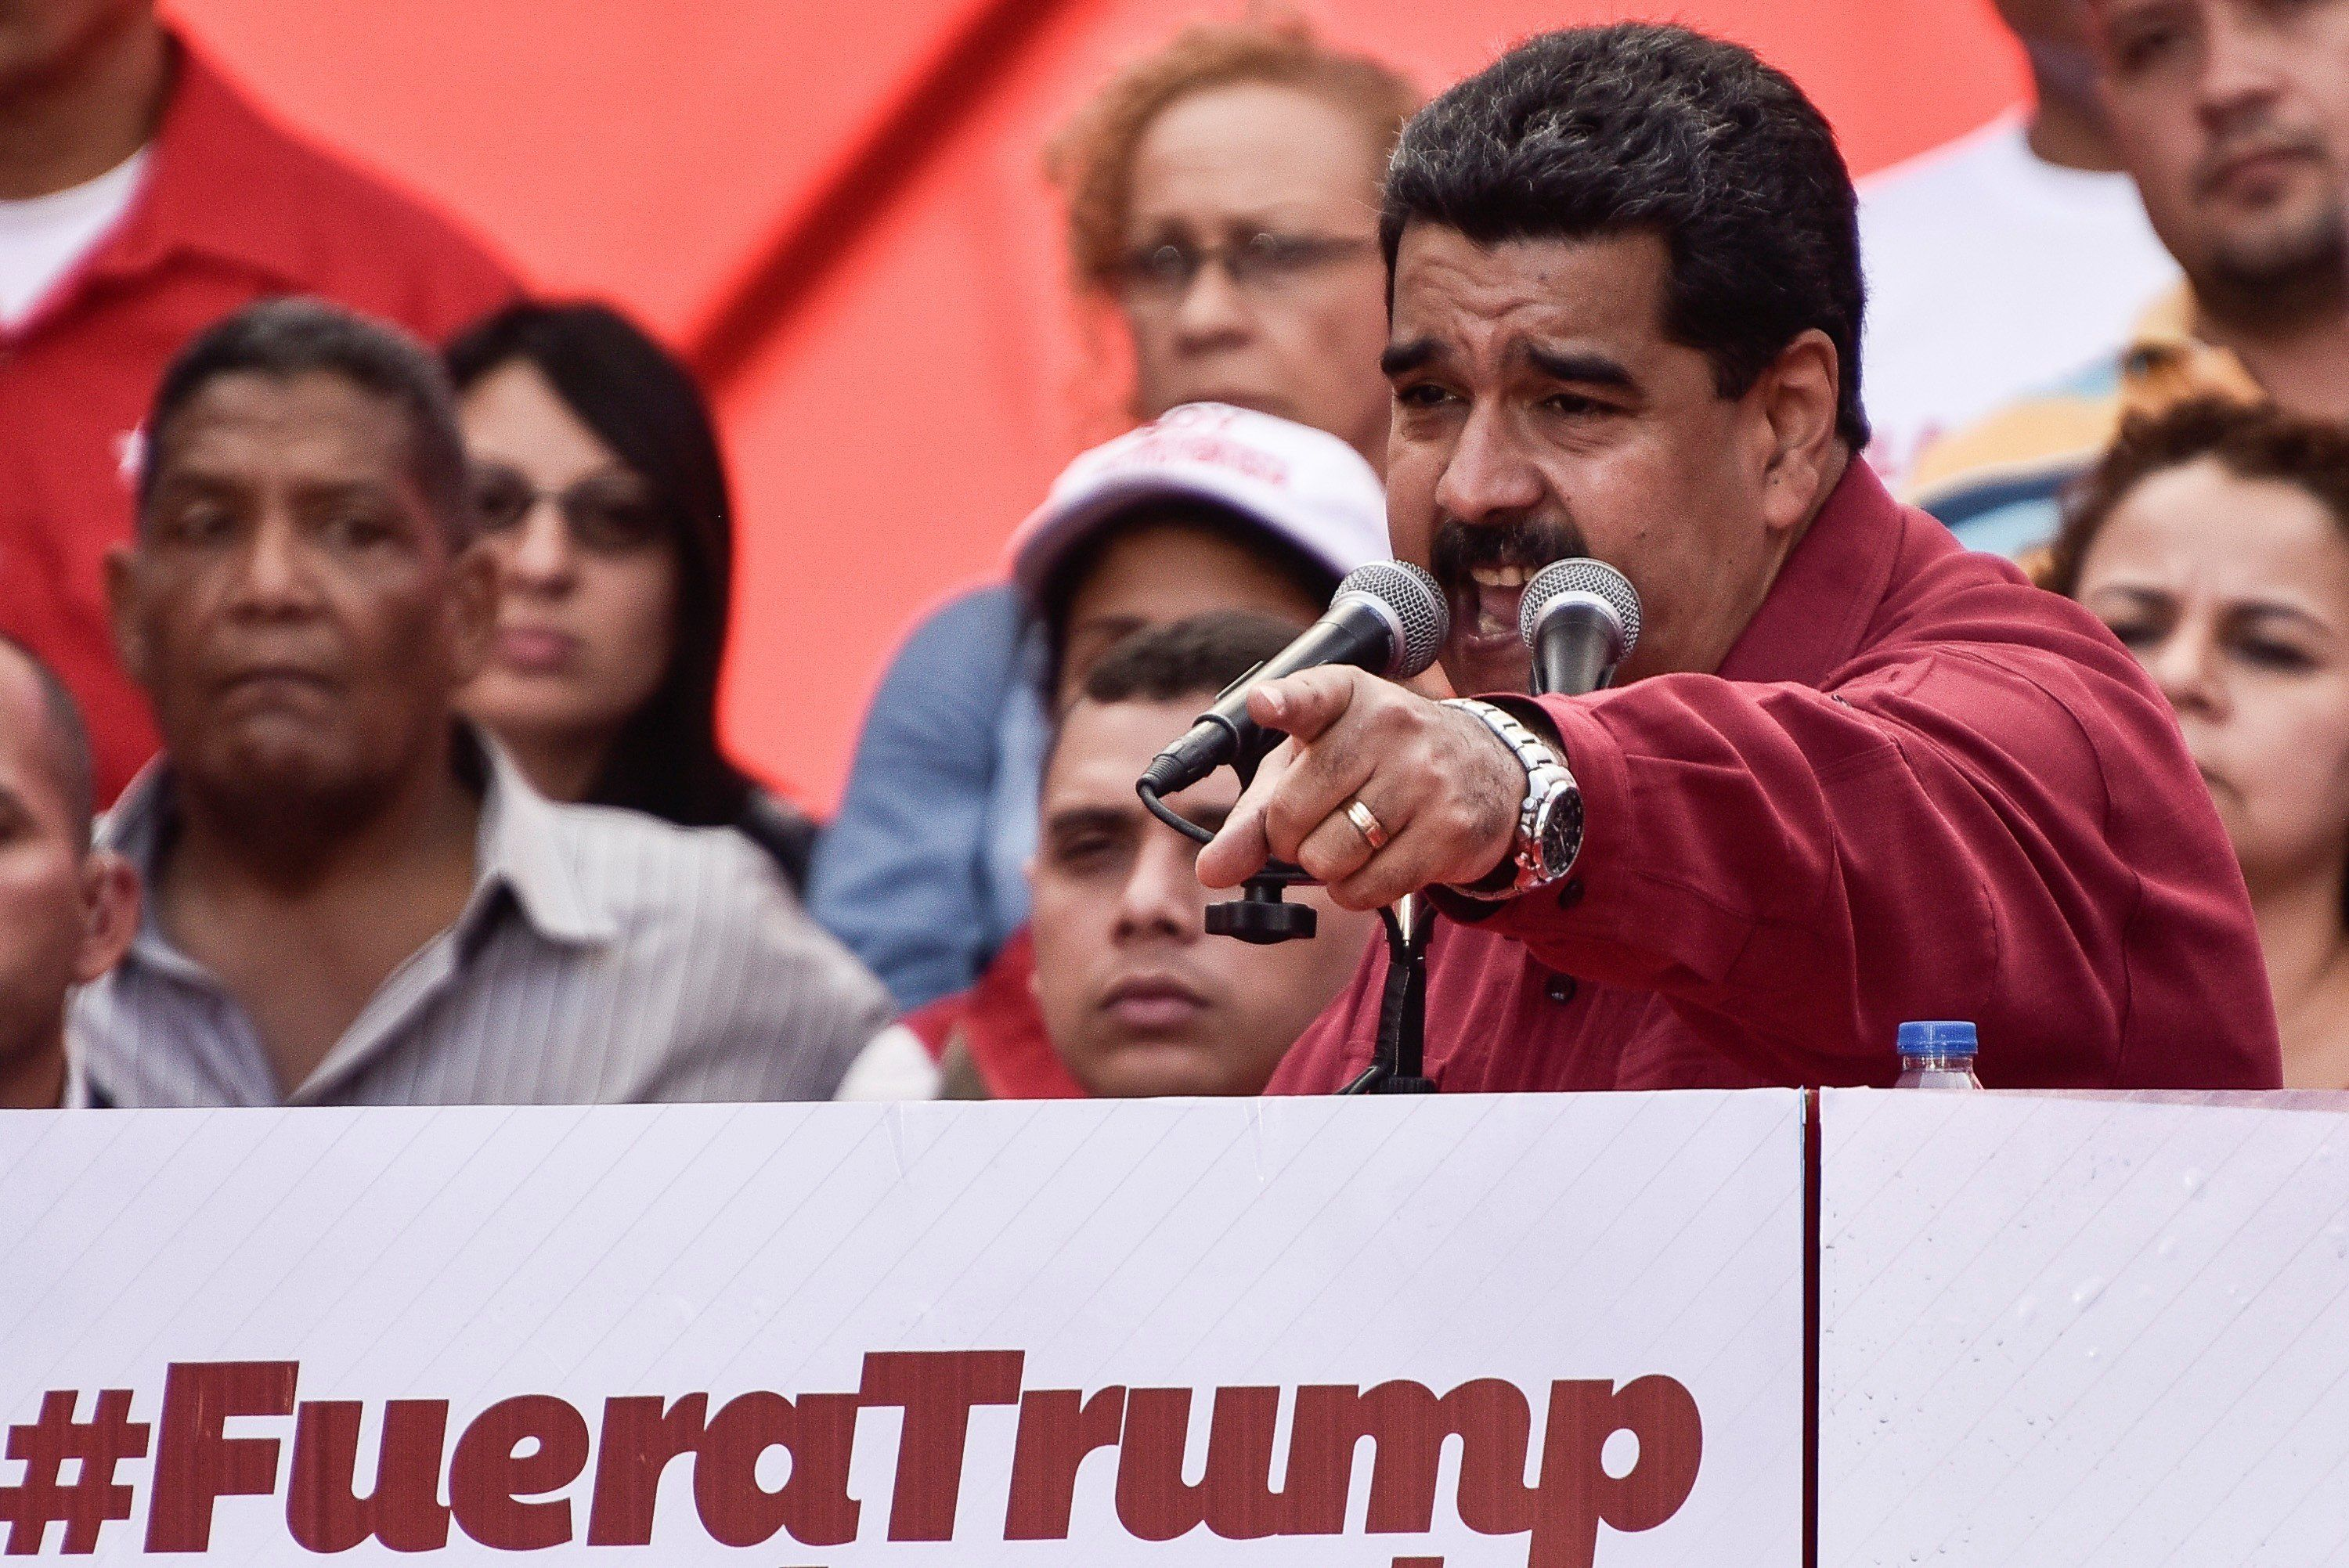 CARACAS, VENEZUELA - AUGUST 14: Venezuela's President Nicolas Maduro (R) gestures as he speaks during a rally supporting him and opposing U.S. President Donald Trump, in Caracas, on August 14, 2017. (Photo by Carlos Becerra/Anadolu Agency/Getty Images)